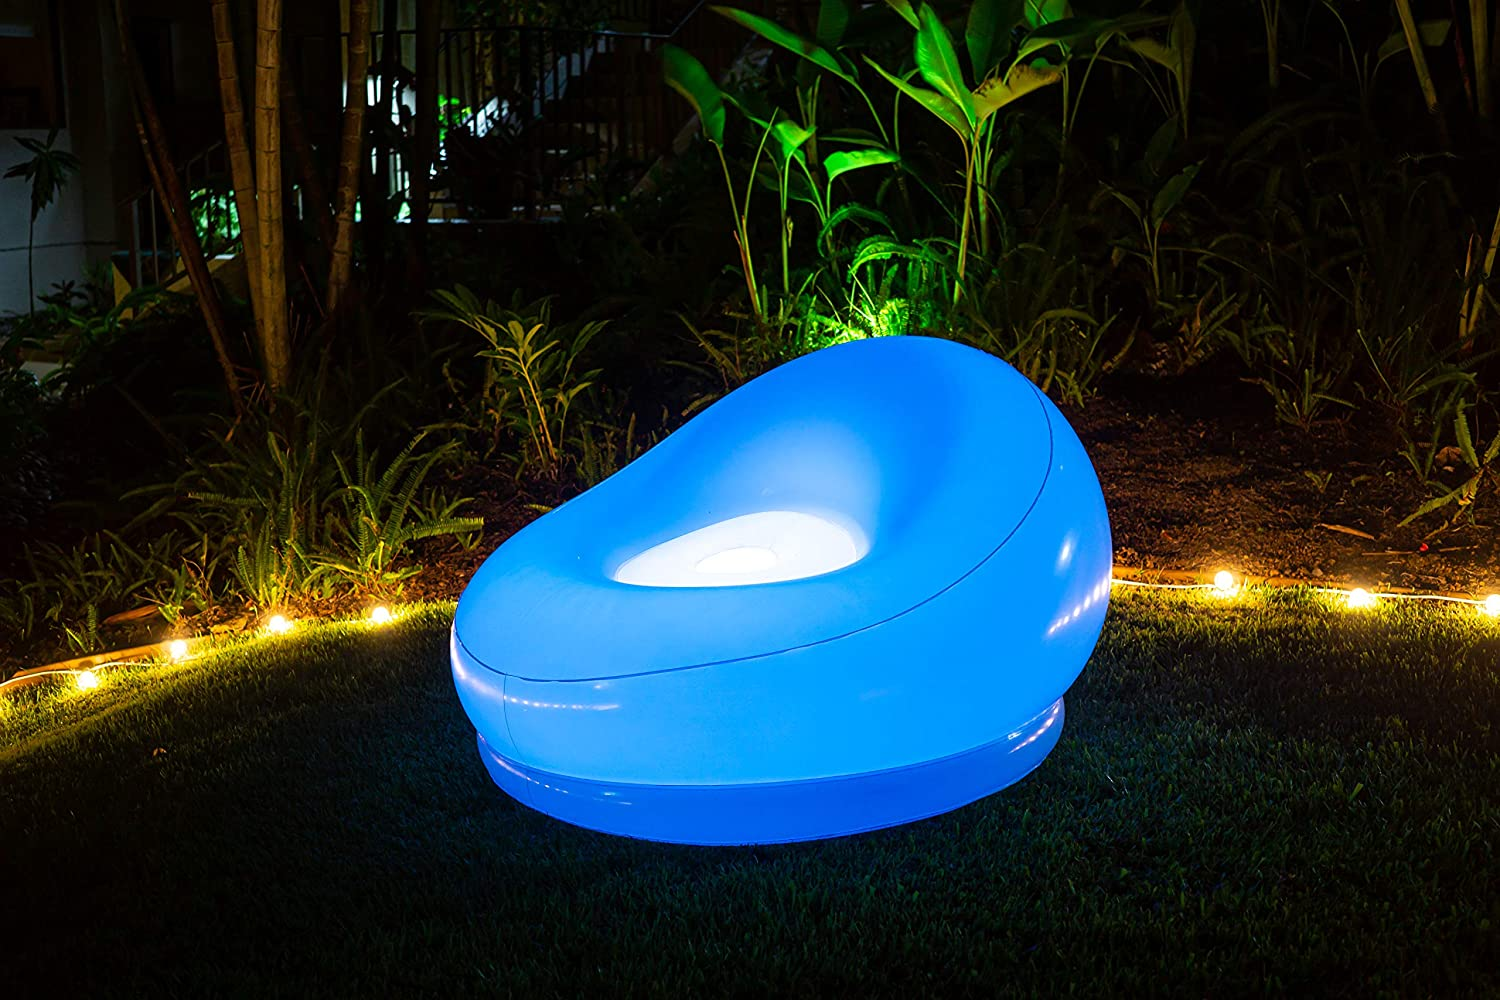 Air Candy by PoolCandy Illuminated LED Inflatable Chair, Accent Contemporary Lounge Chair for Living, Bedroom, Dorm, Patio Decor, Indoors or Outdoors, Waterproof, 120 Color Changing Options w/Remote